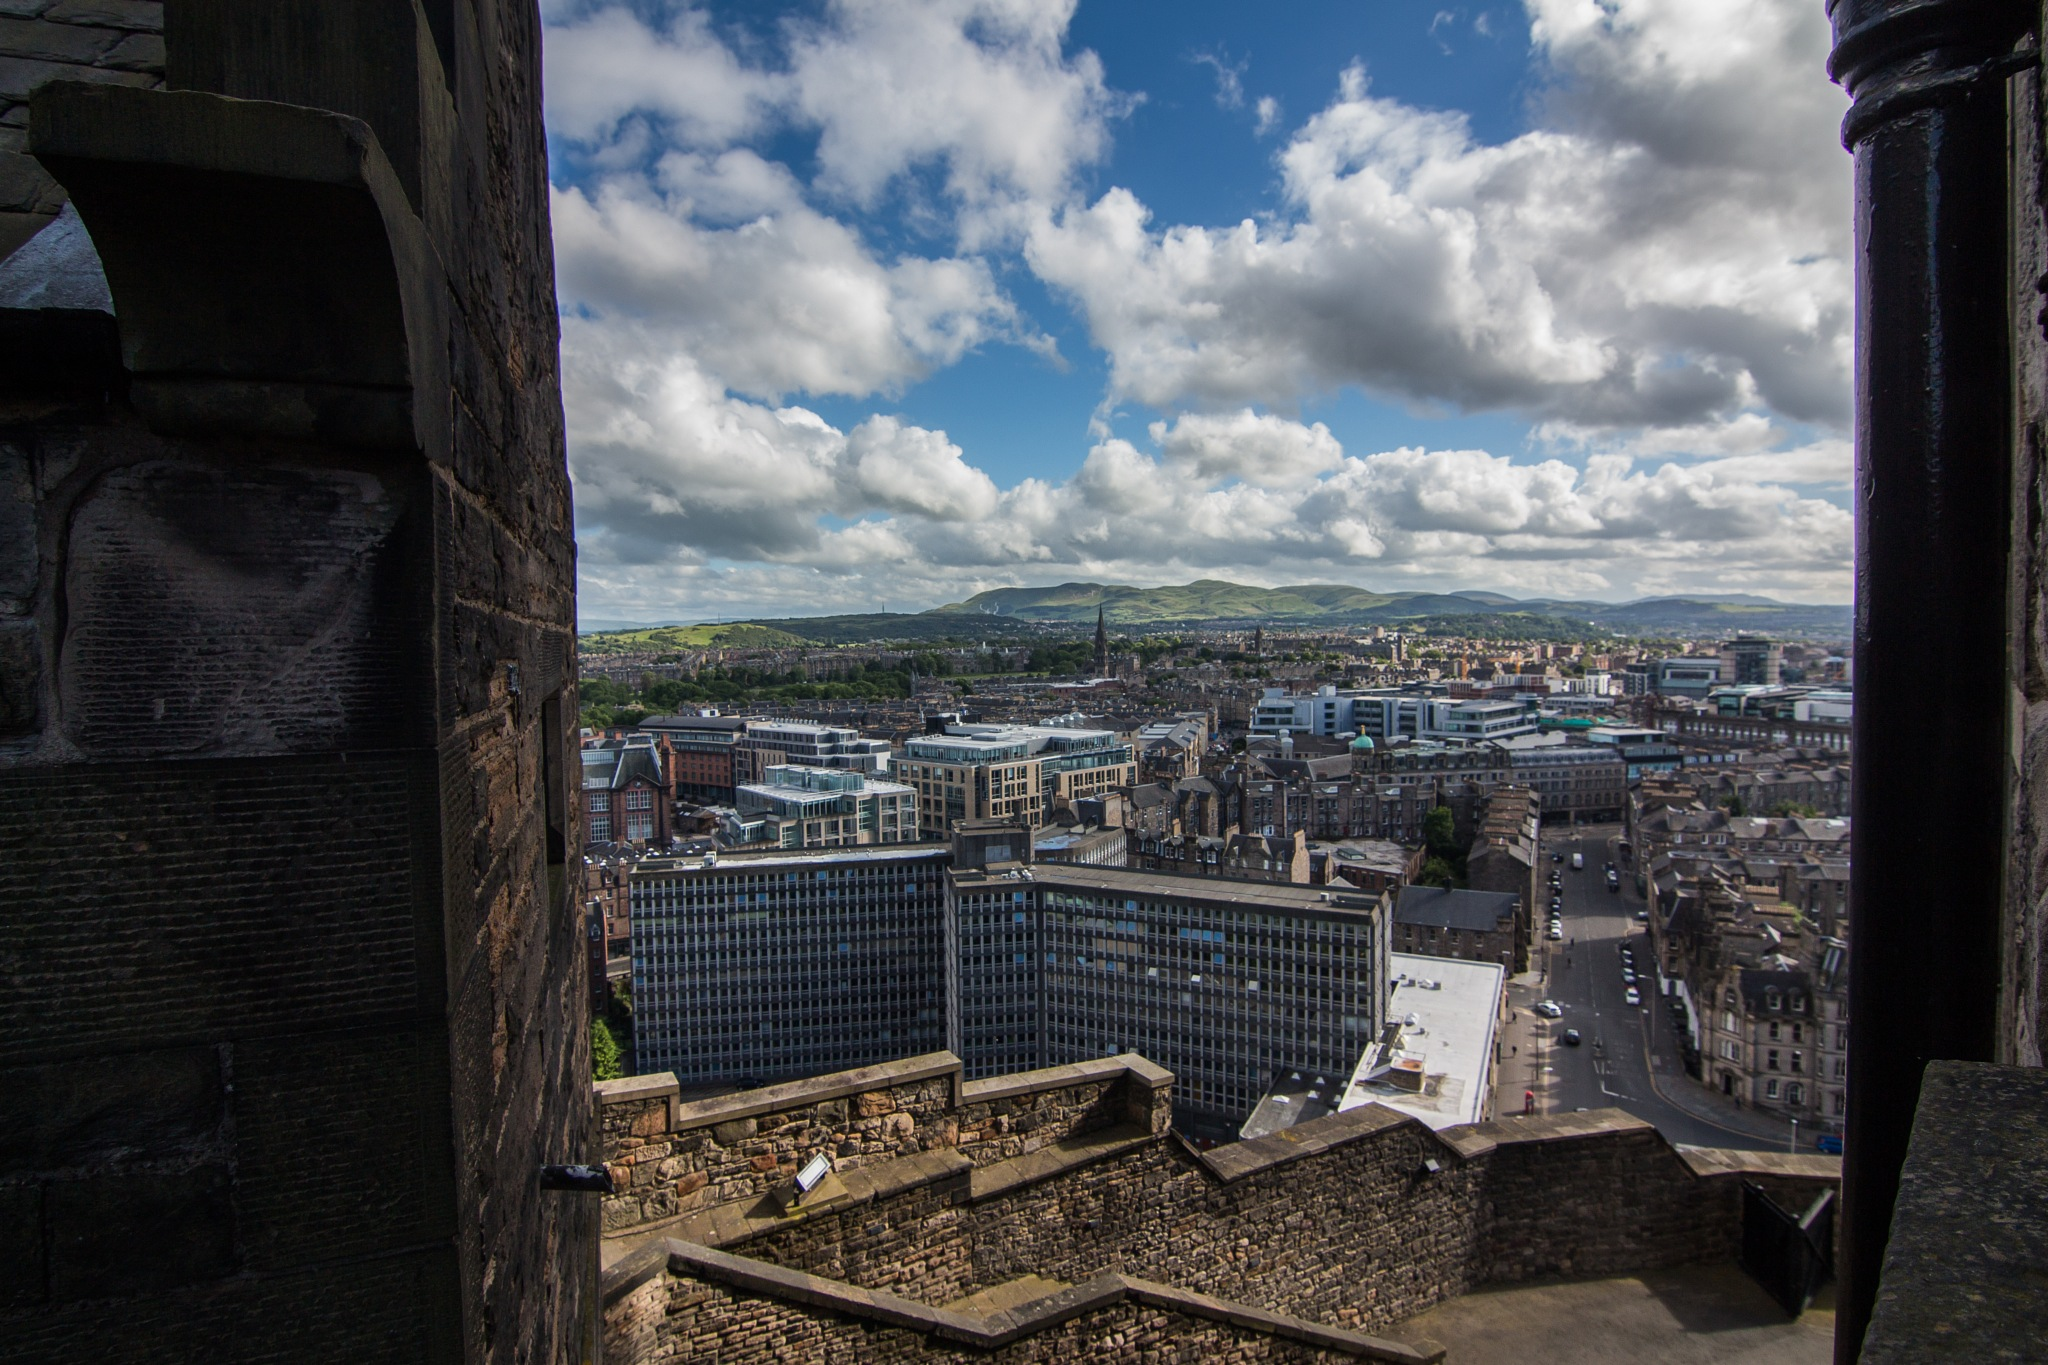 View from the Castle Walls by Ben V